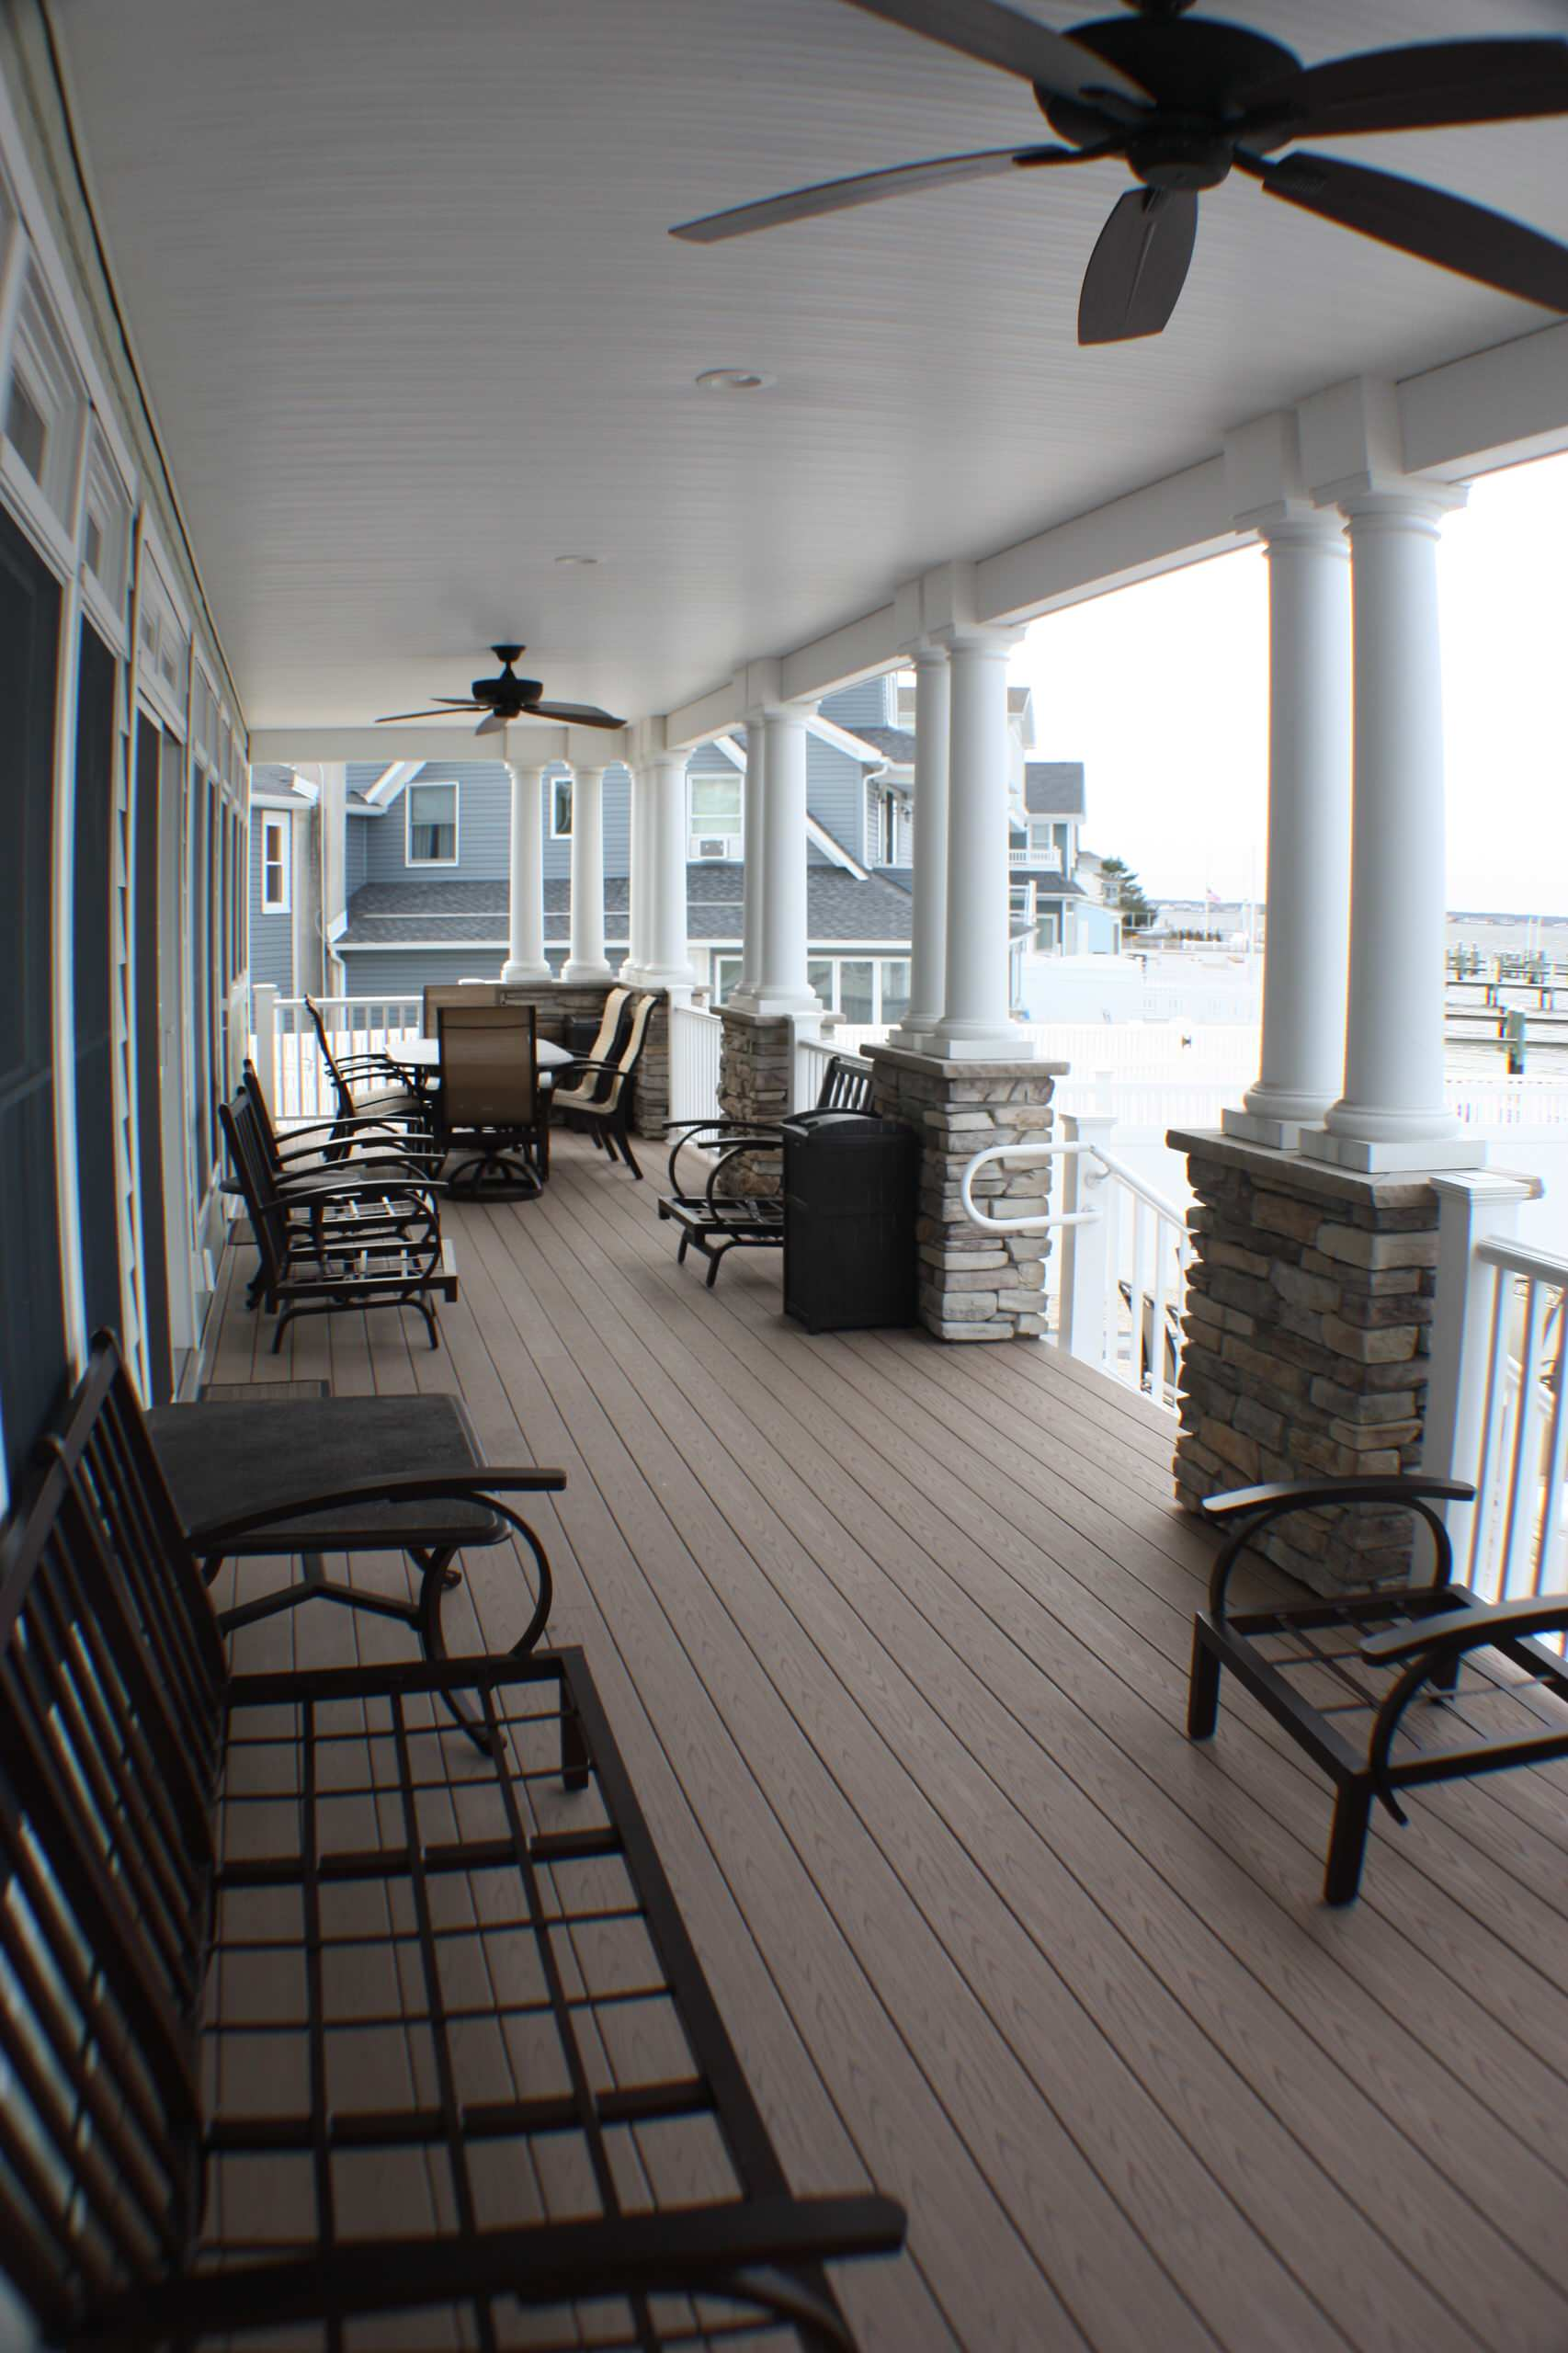 Lavallette, Pershing Blvd, Bay Front